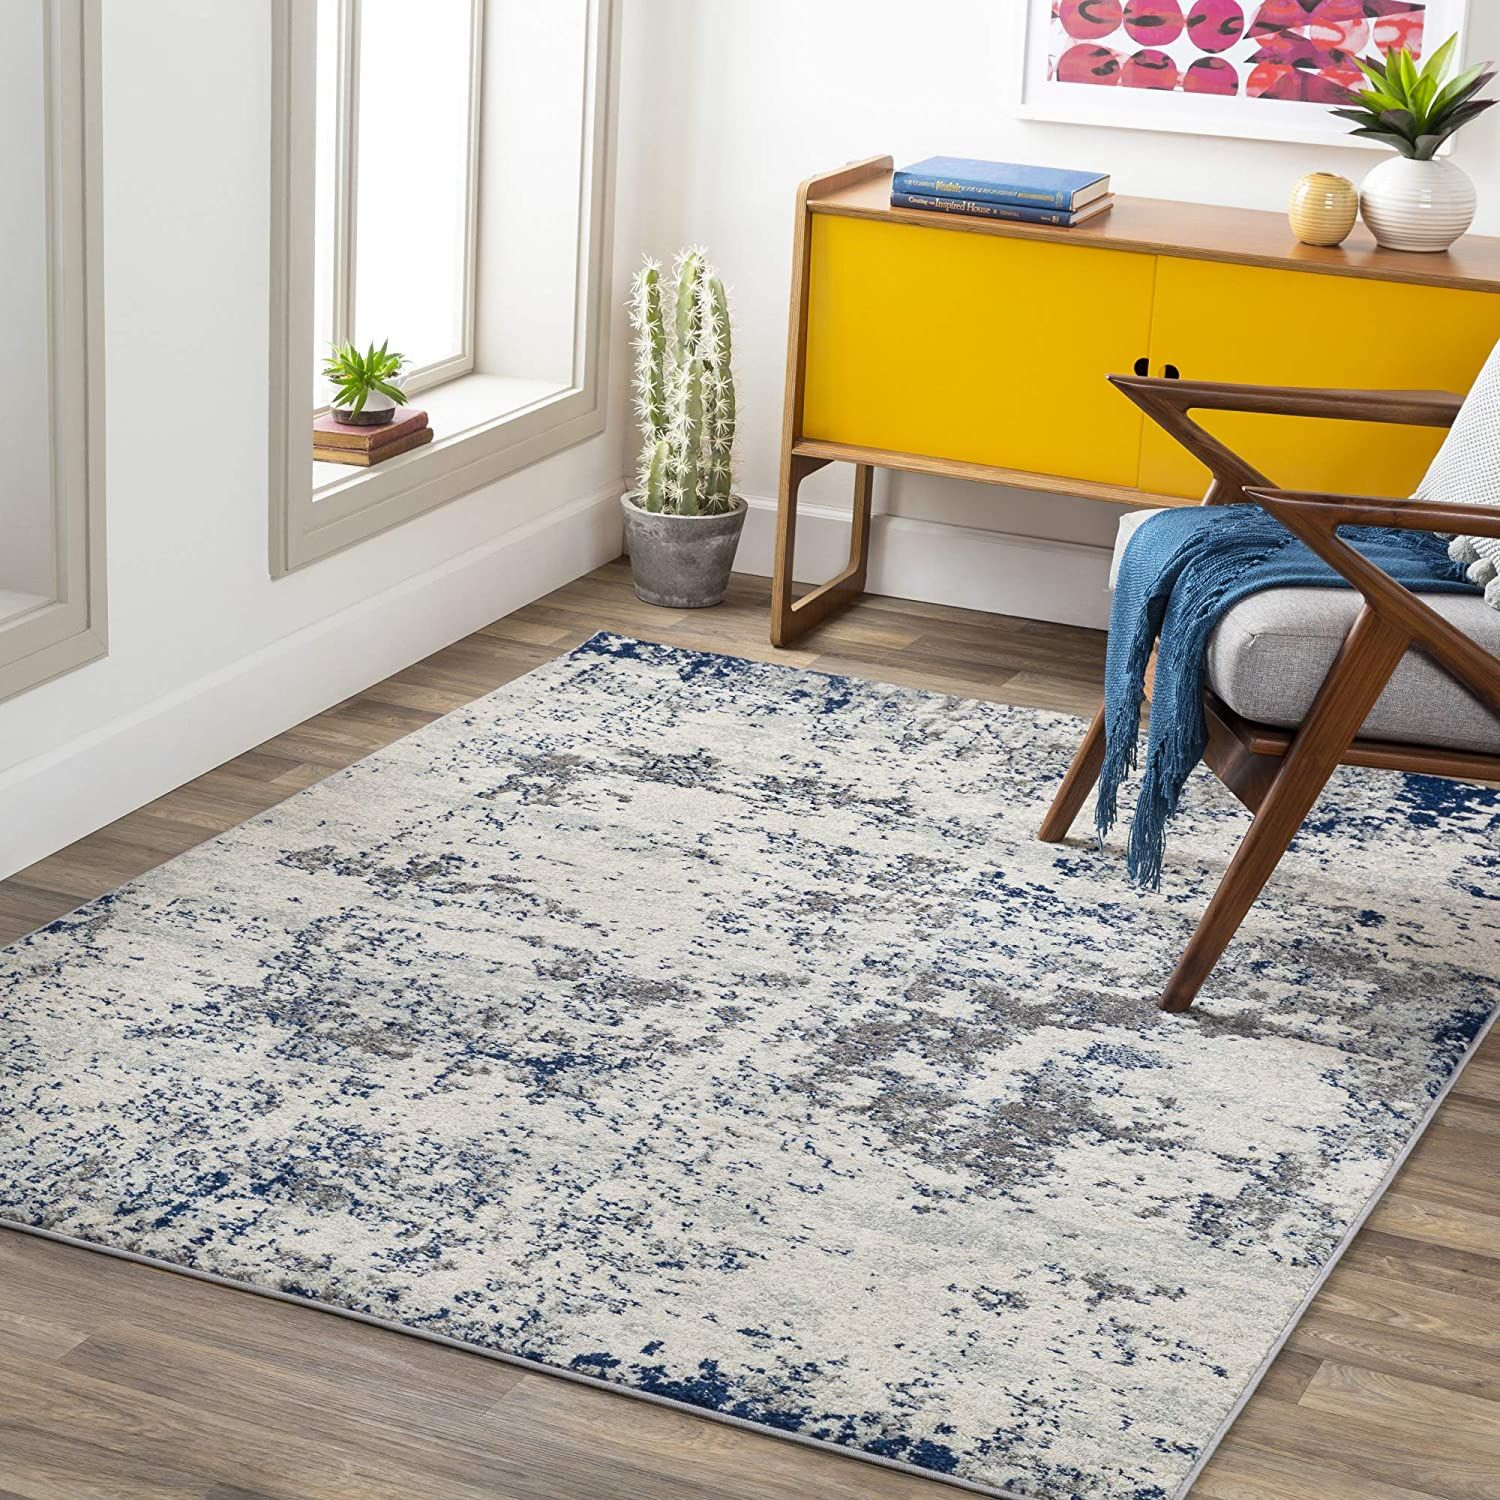 Pin By Miranda Scott On Ms Bd Home Light Grey Area Rug Blue Area Rugs Southwestern Area Rugs Ms living room rugs